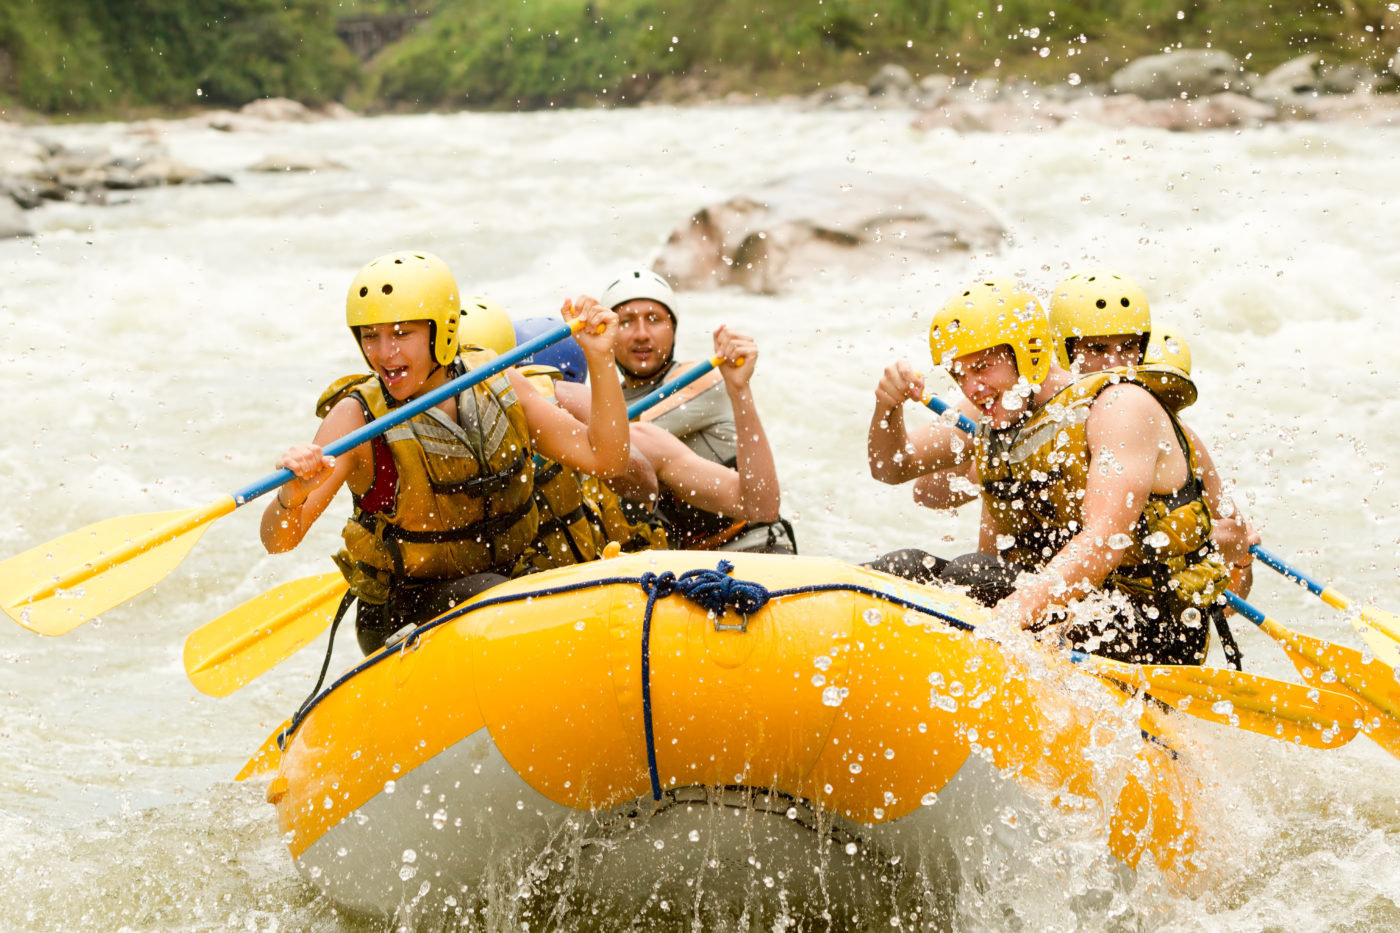 Whitewater River Rafting Fun